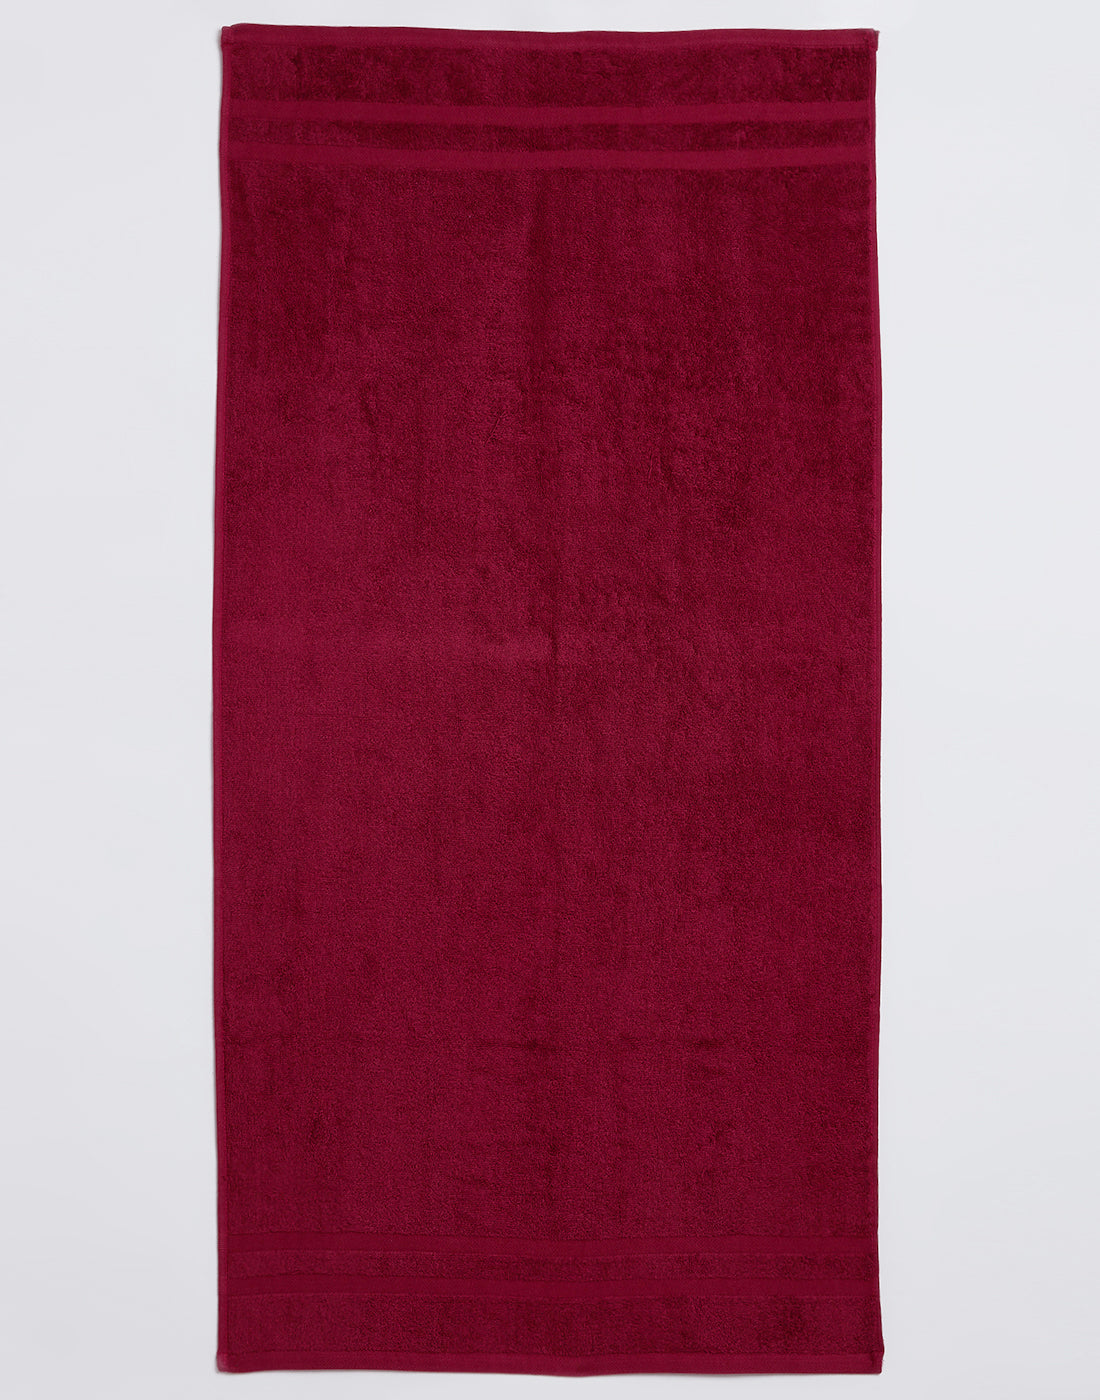 Octave Salsa Red Cotton Bath Towels